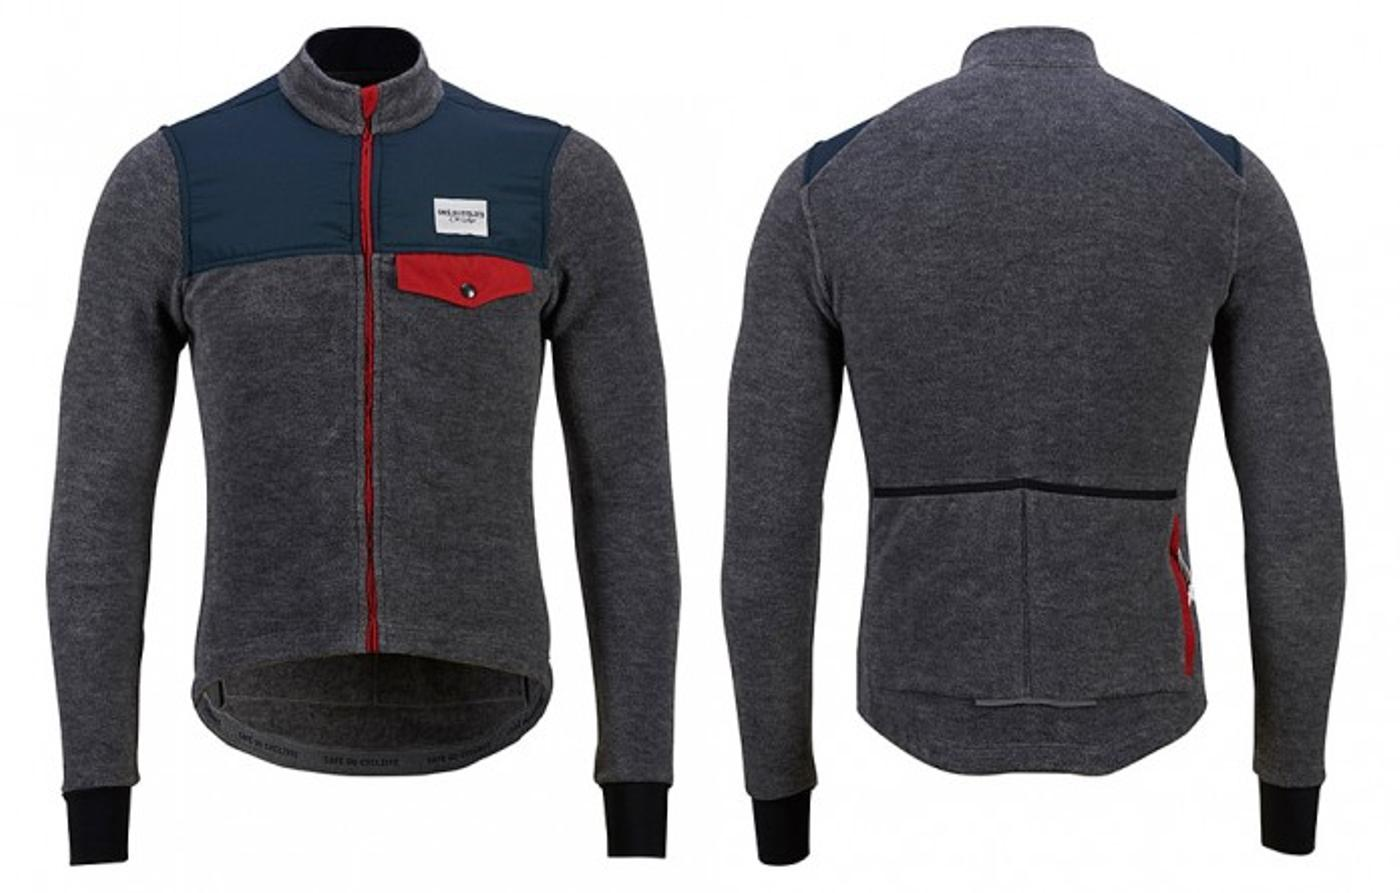 mens-merino-fleece-cycling-jersey-alphonsine-navy-front_back